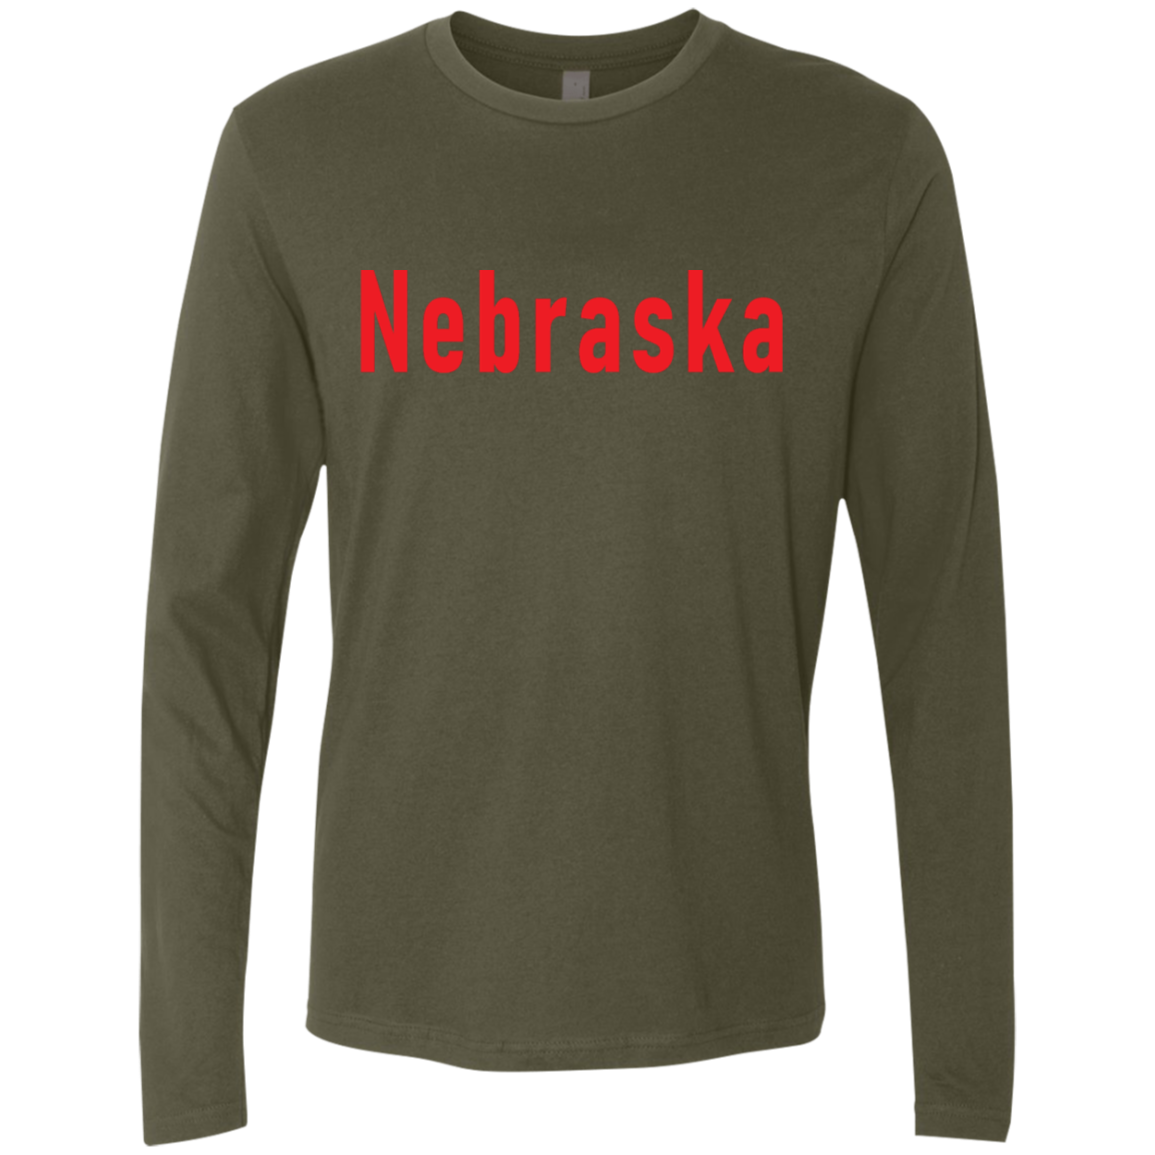 Nebraska Men's Long Sleeve Tee